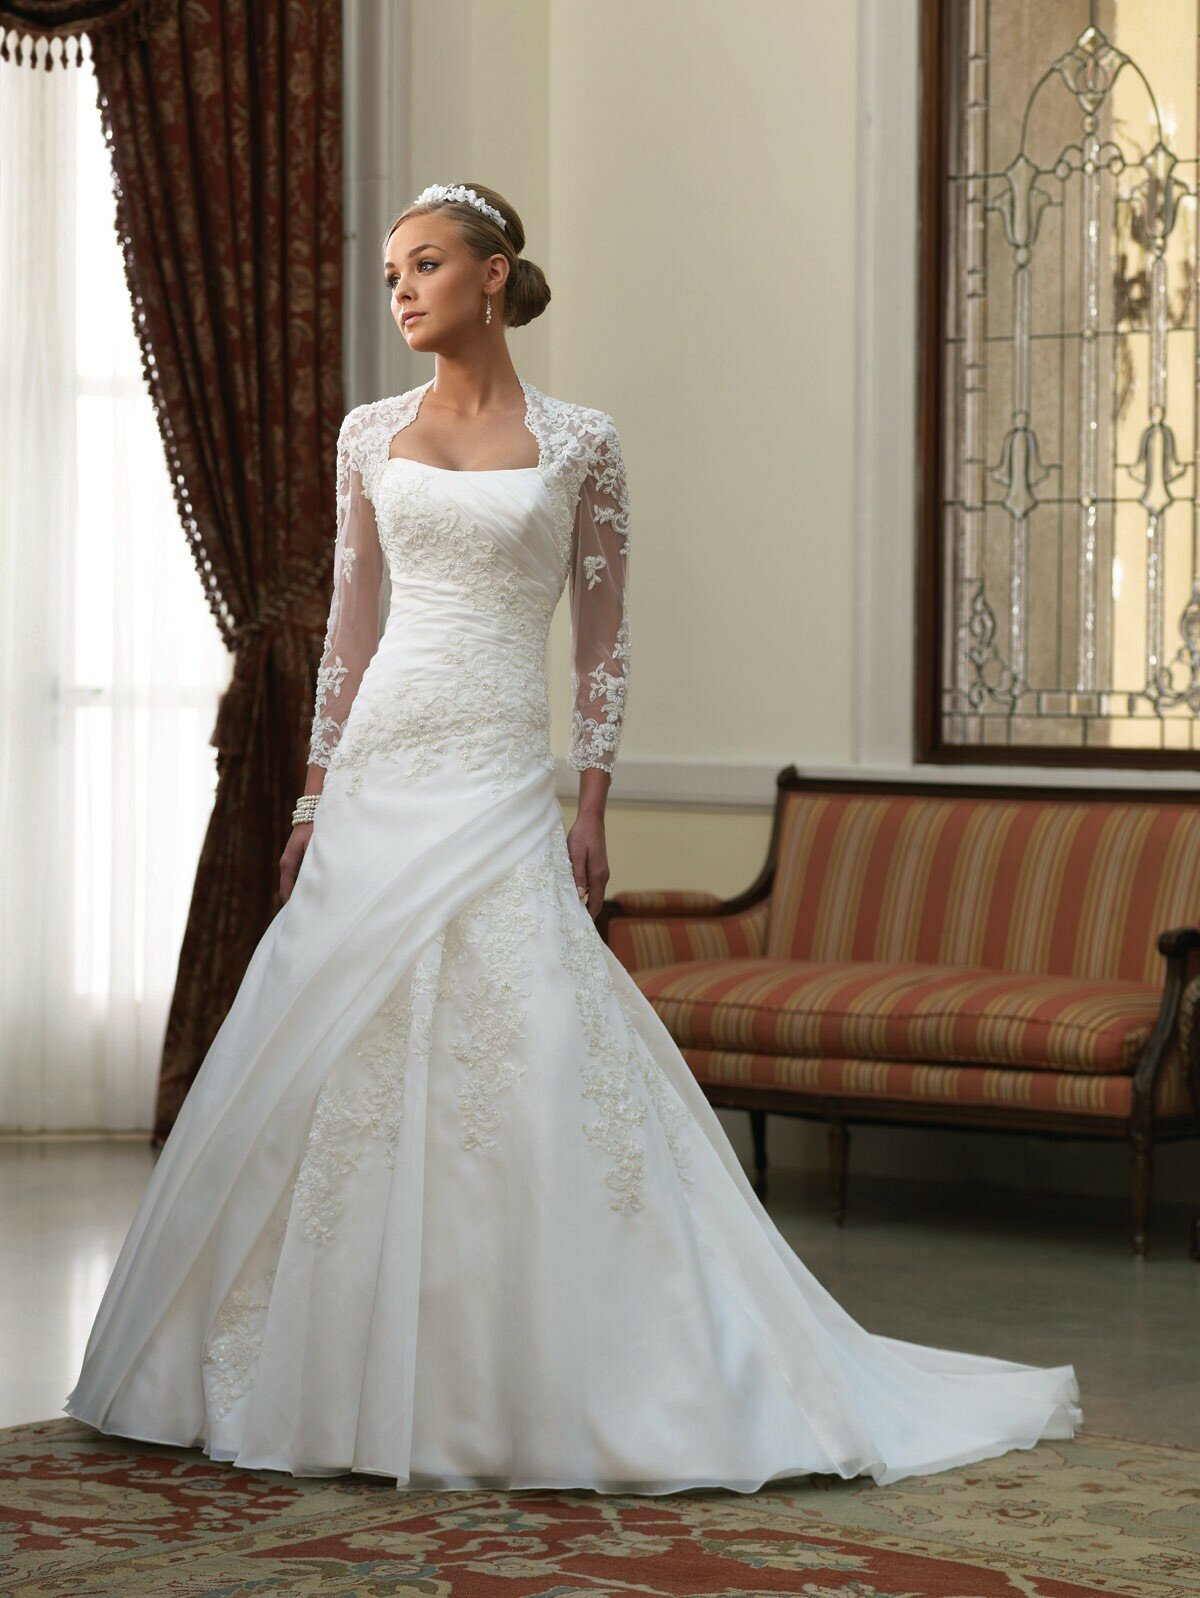 Western lace wedding dresses Photo - 2